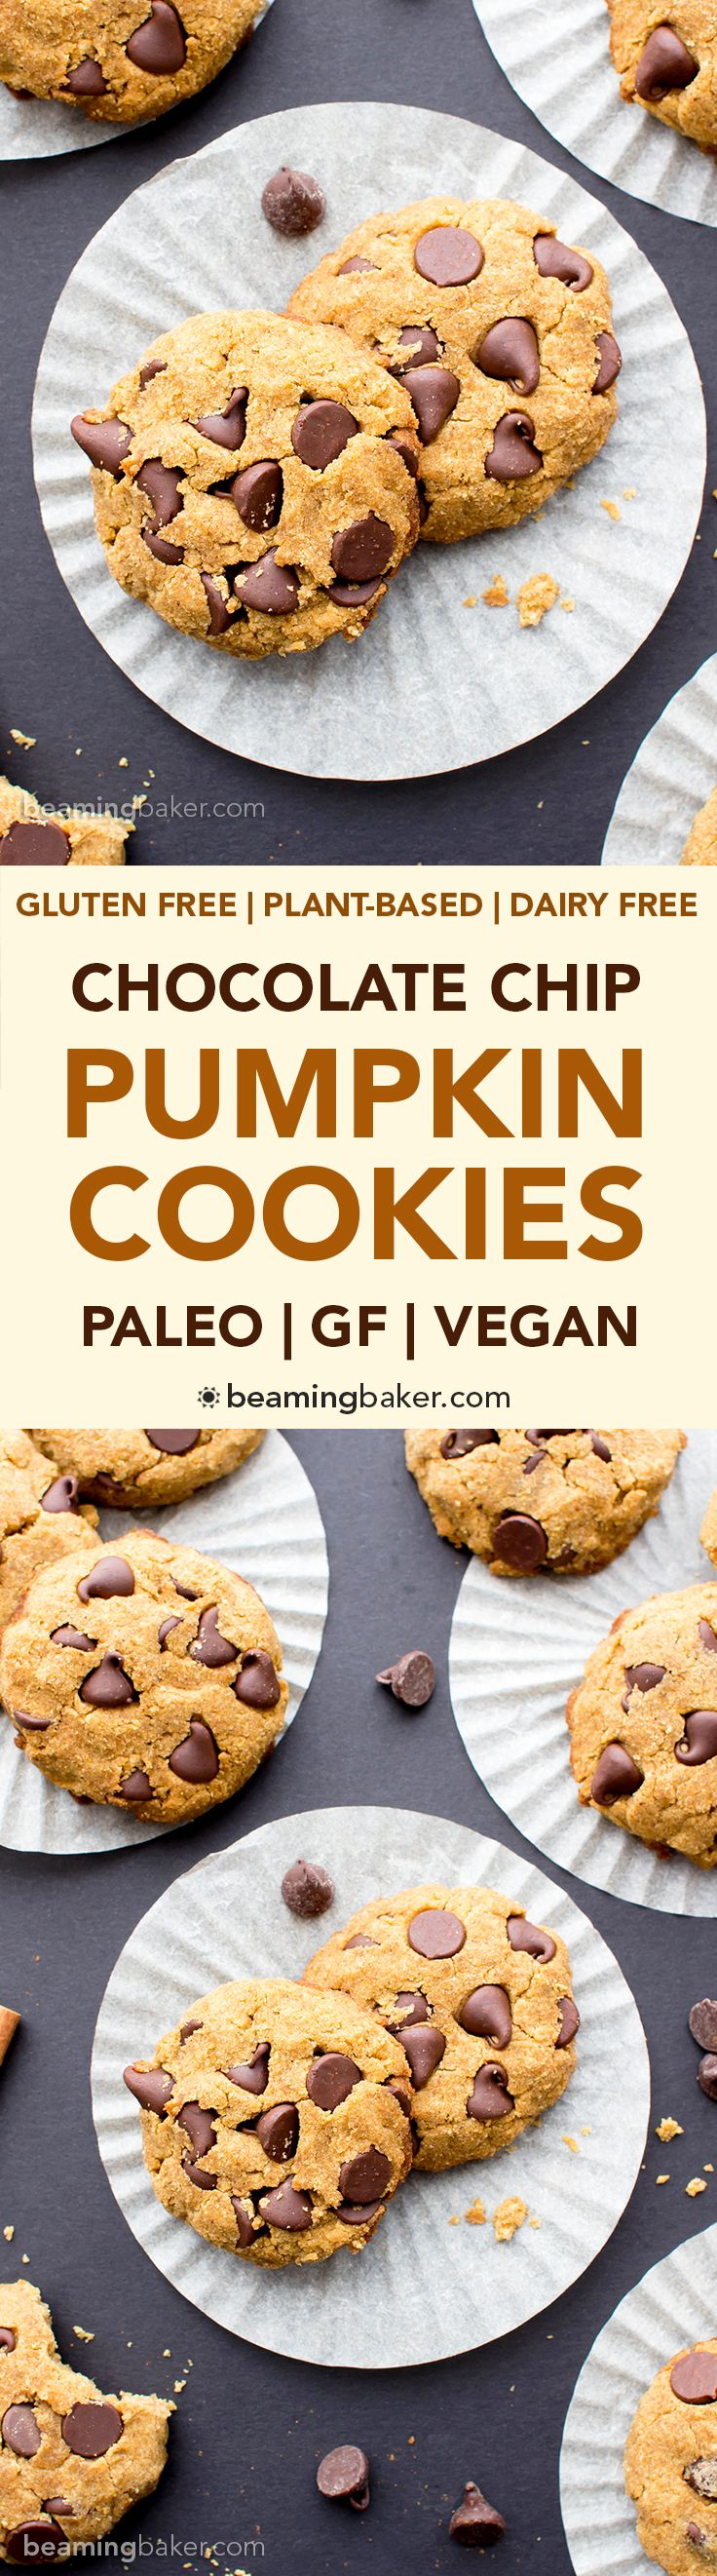 Paleo Vegan Pumpkin Chocolate Chip Cookies (V, GF, Paleo): an easy recipe for super soft pumpkin chocolate chip cookies made with whole ingredients. #Vegan #Paleo #GlutenFree #DairyFree | BeamingBaker.com